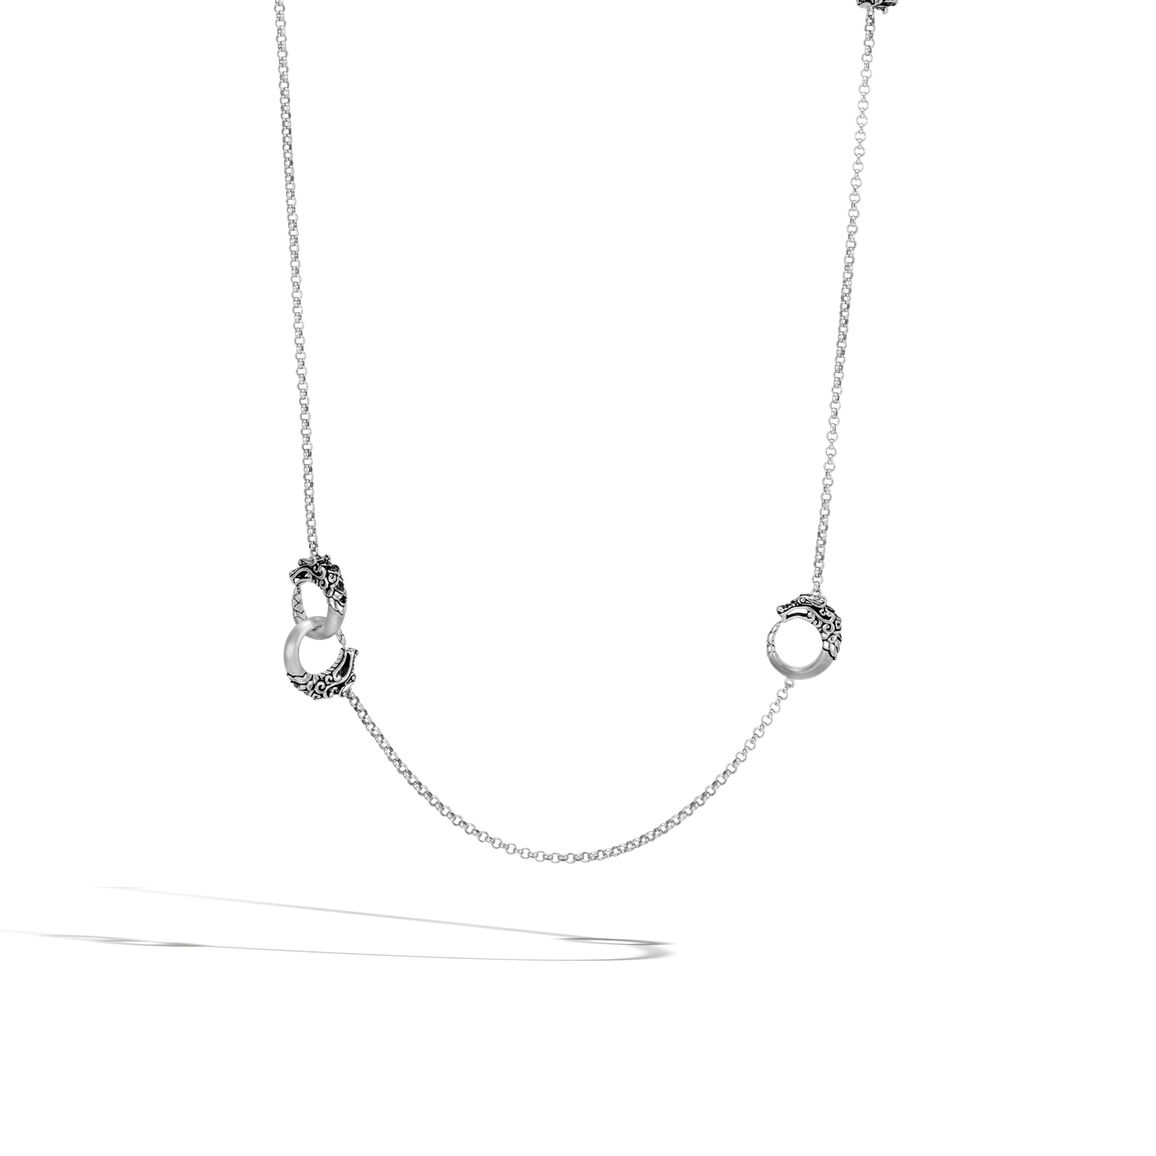 Legends Naga Station Necklace, Brushed Silver with Gemstone